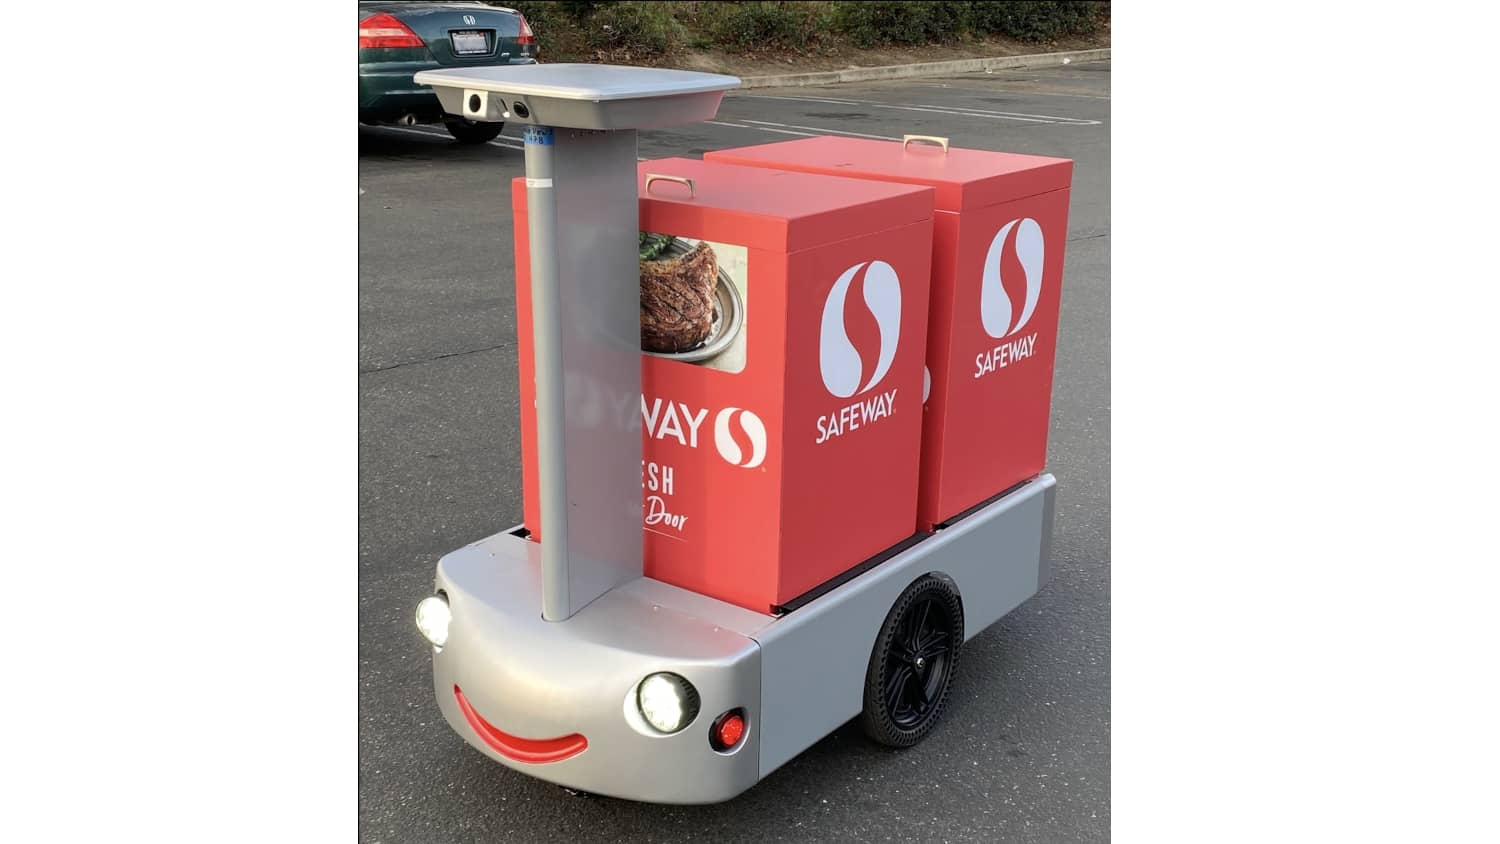 Safeway to test robot delivery